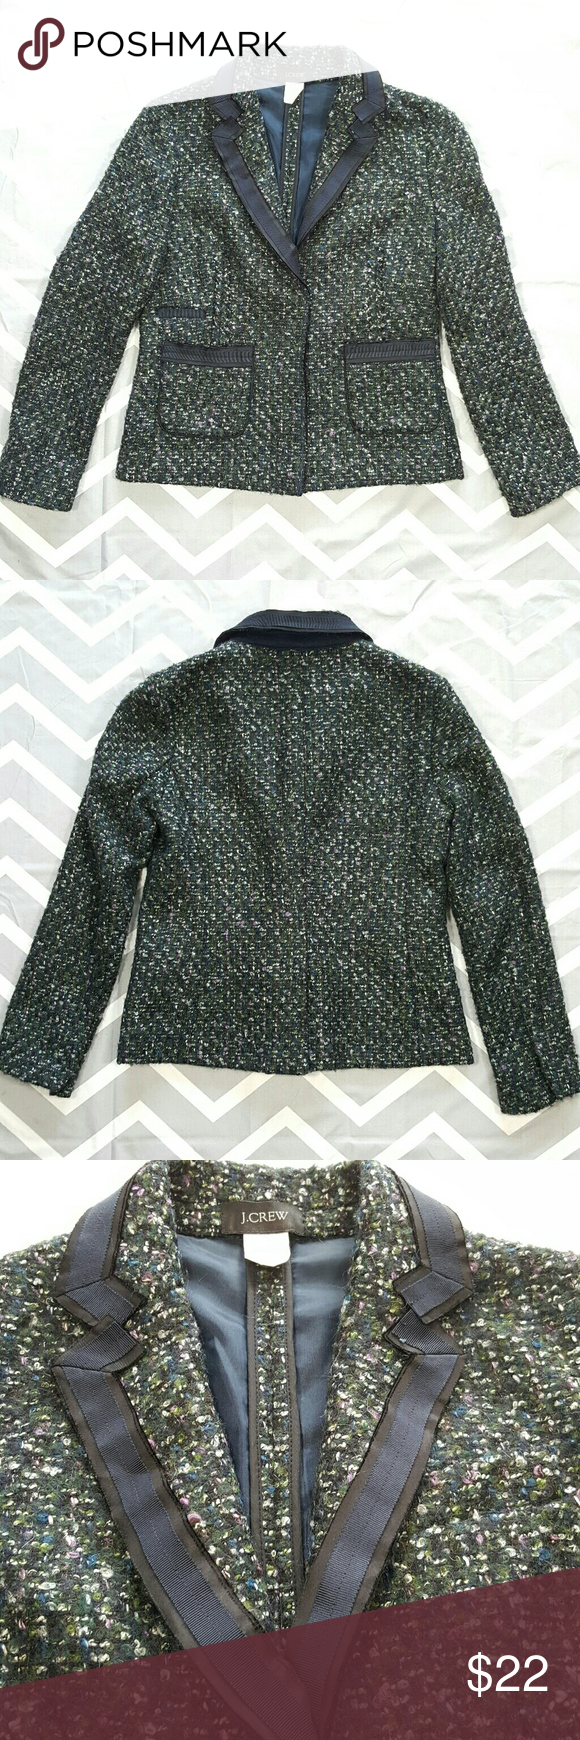 J.Crew tweed blazer jacket Pre-owned good used condition, maybe some light fuzziness due to material, really nothing bad (hope you're able to see in pictures) Has snap button closure on front and sleeves, 2 pockets, slit on back. J. Crew Jackets & Coats Blazers